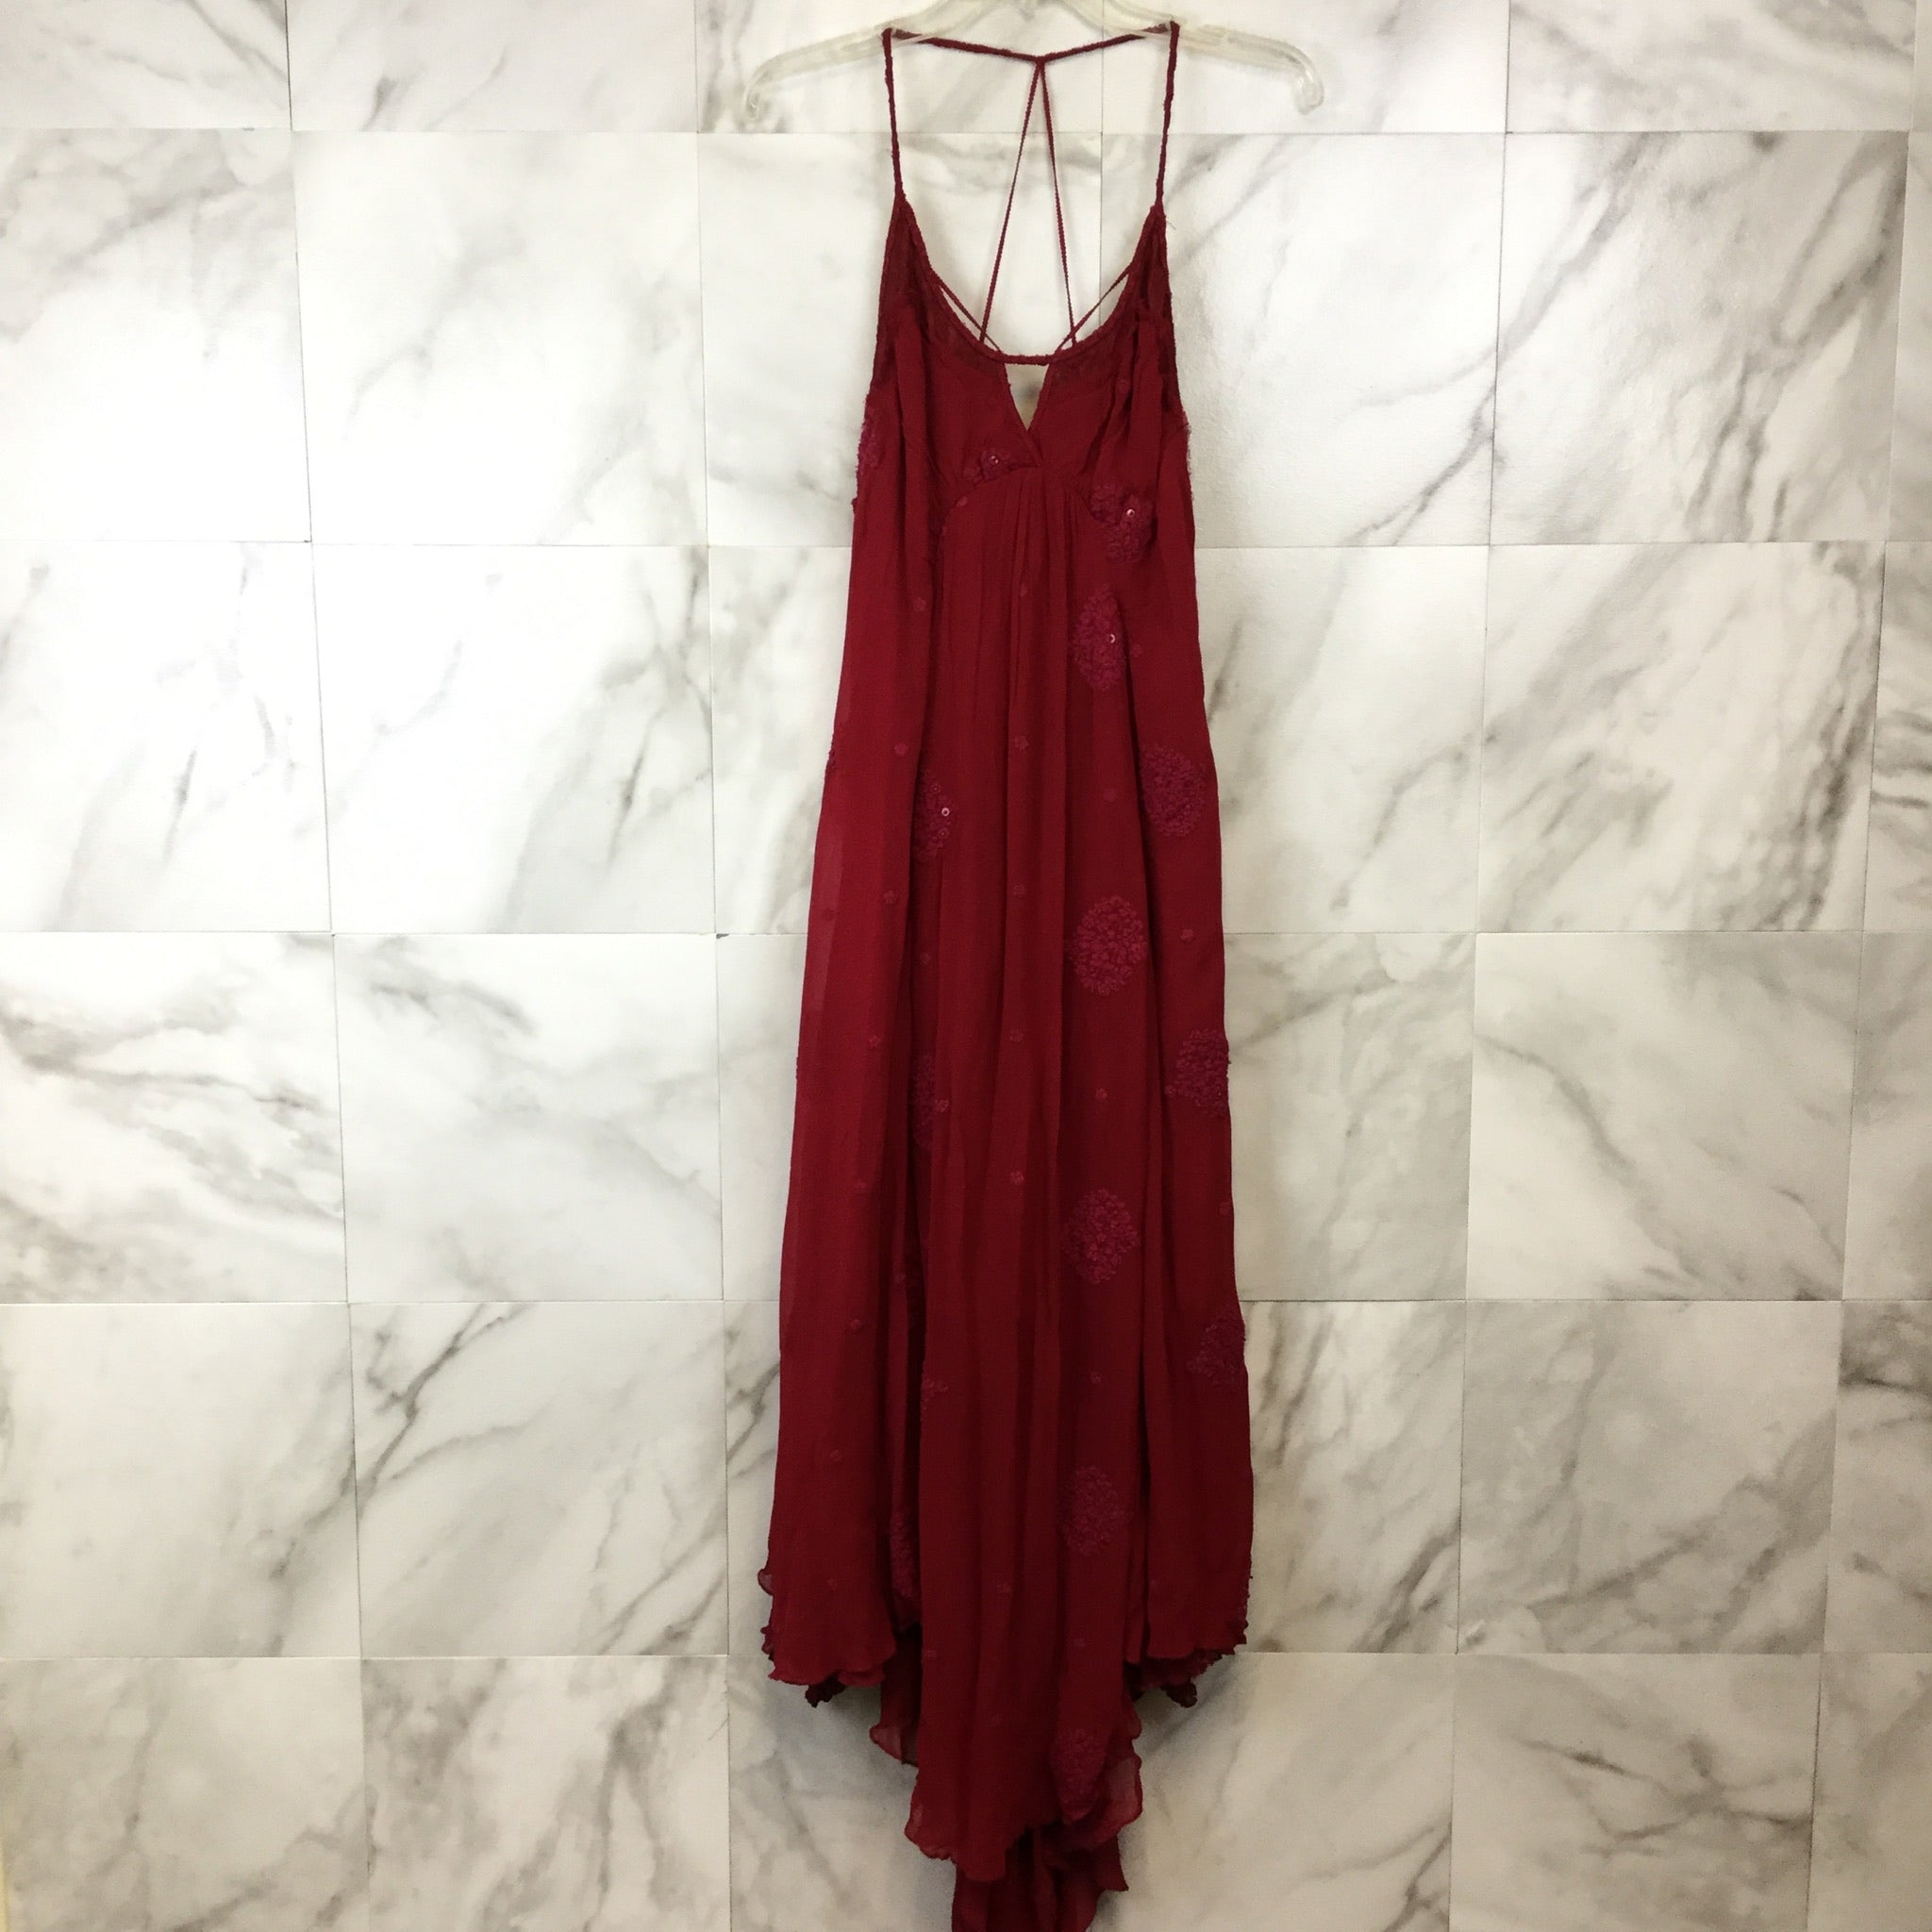 Free People Blue Moon Dress - size 6